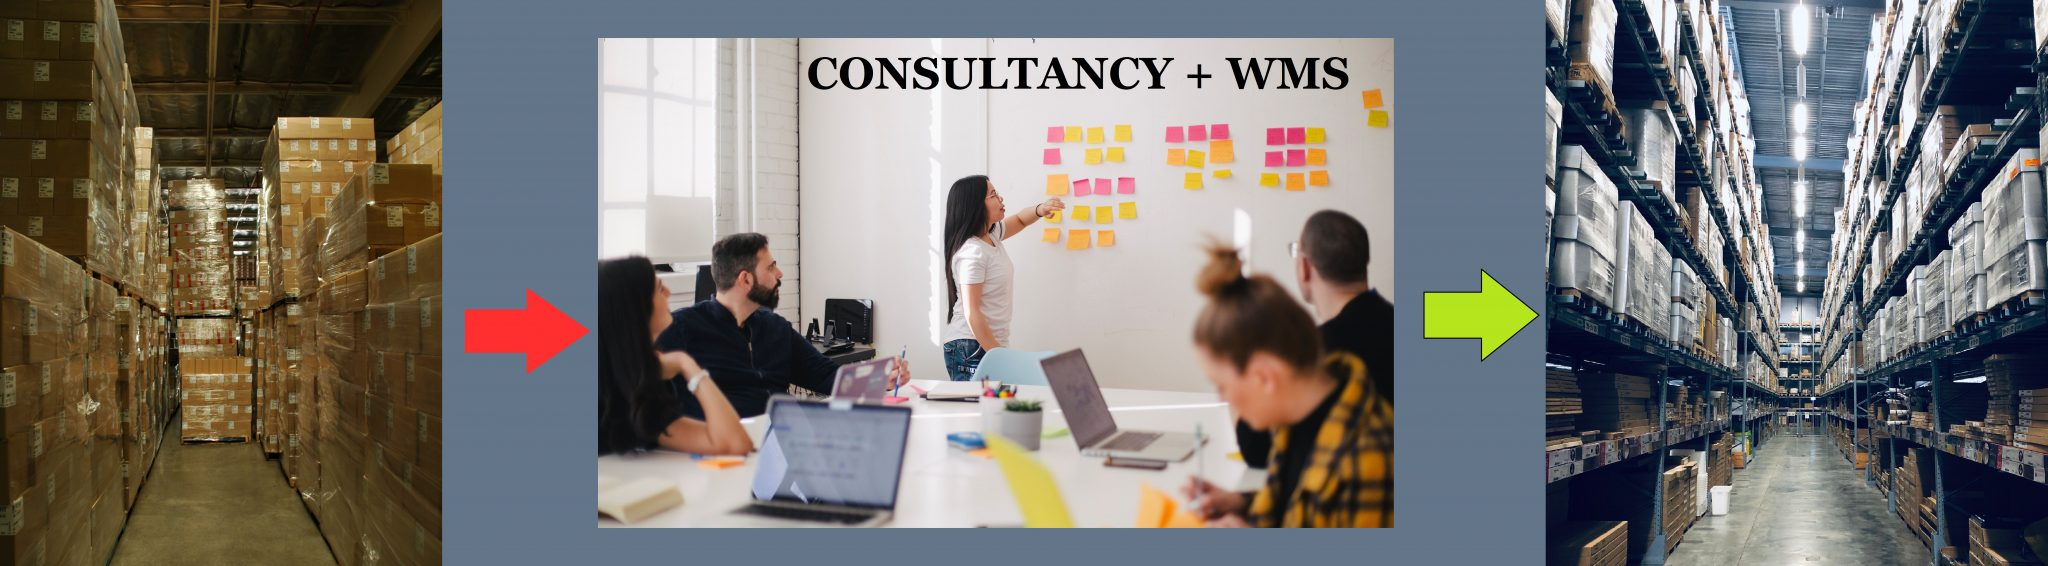 WMS-Automation-Consultancy